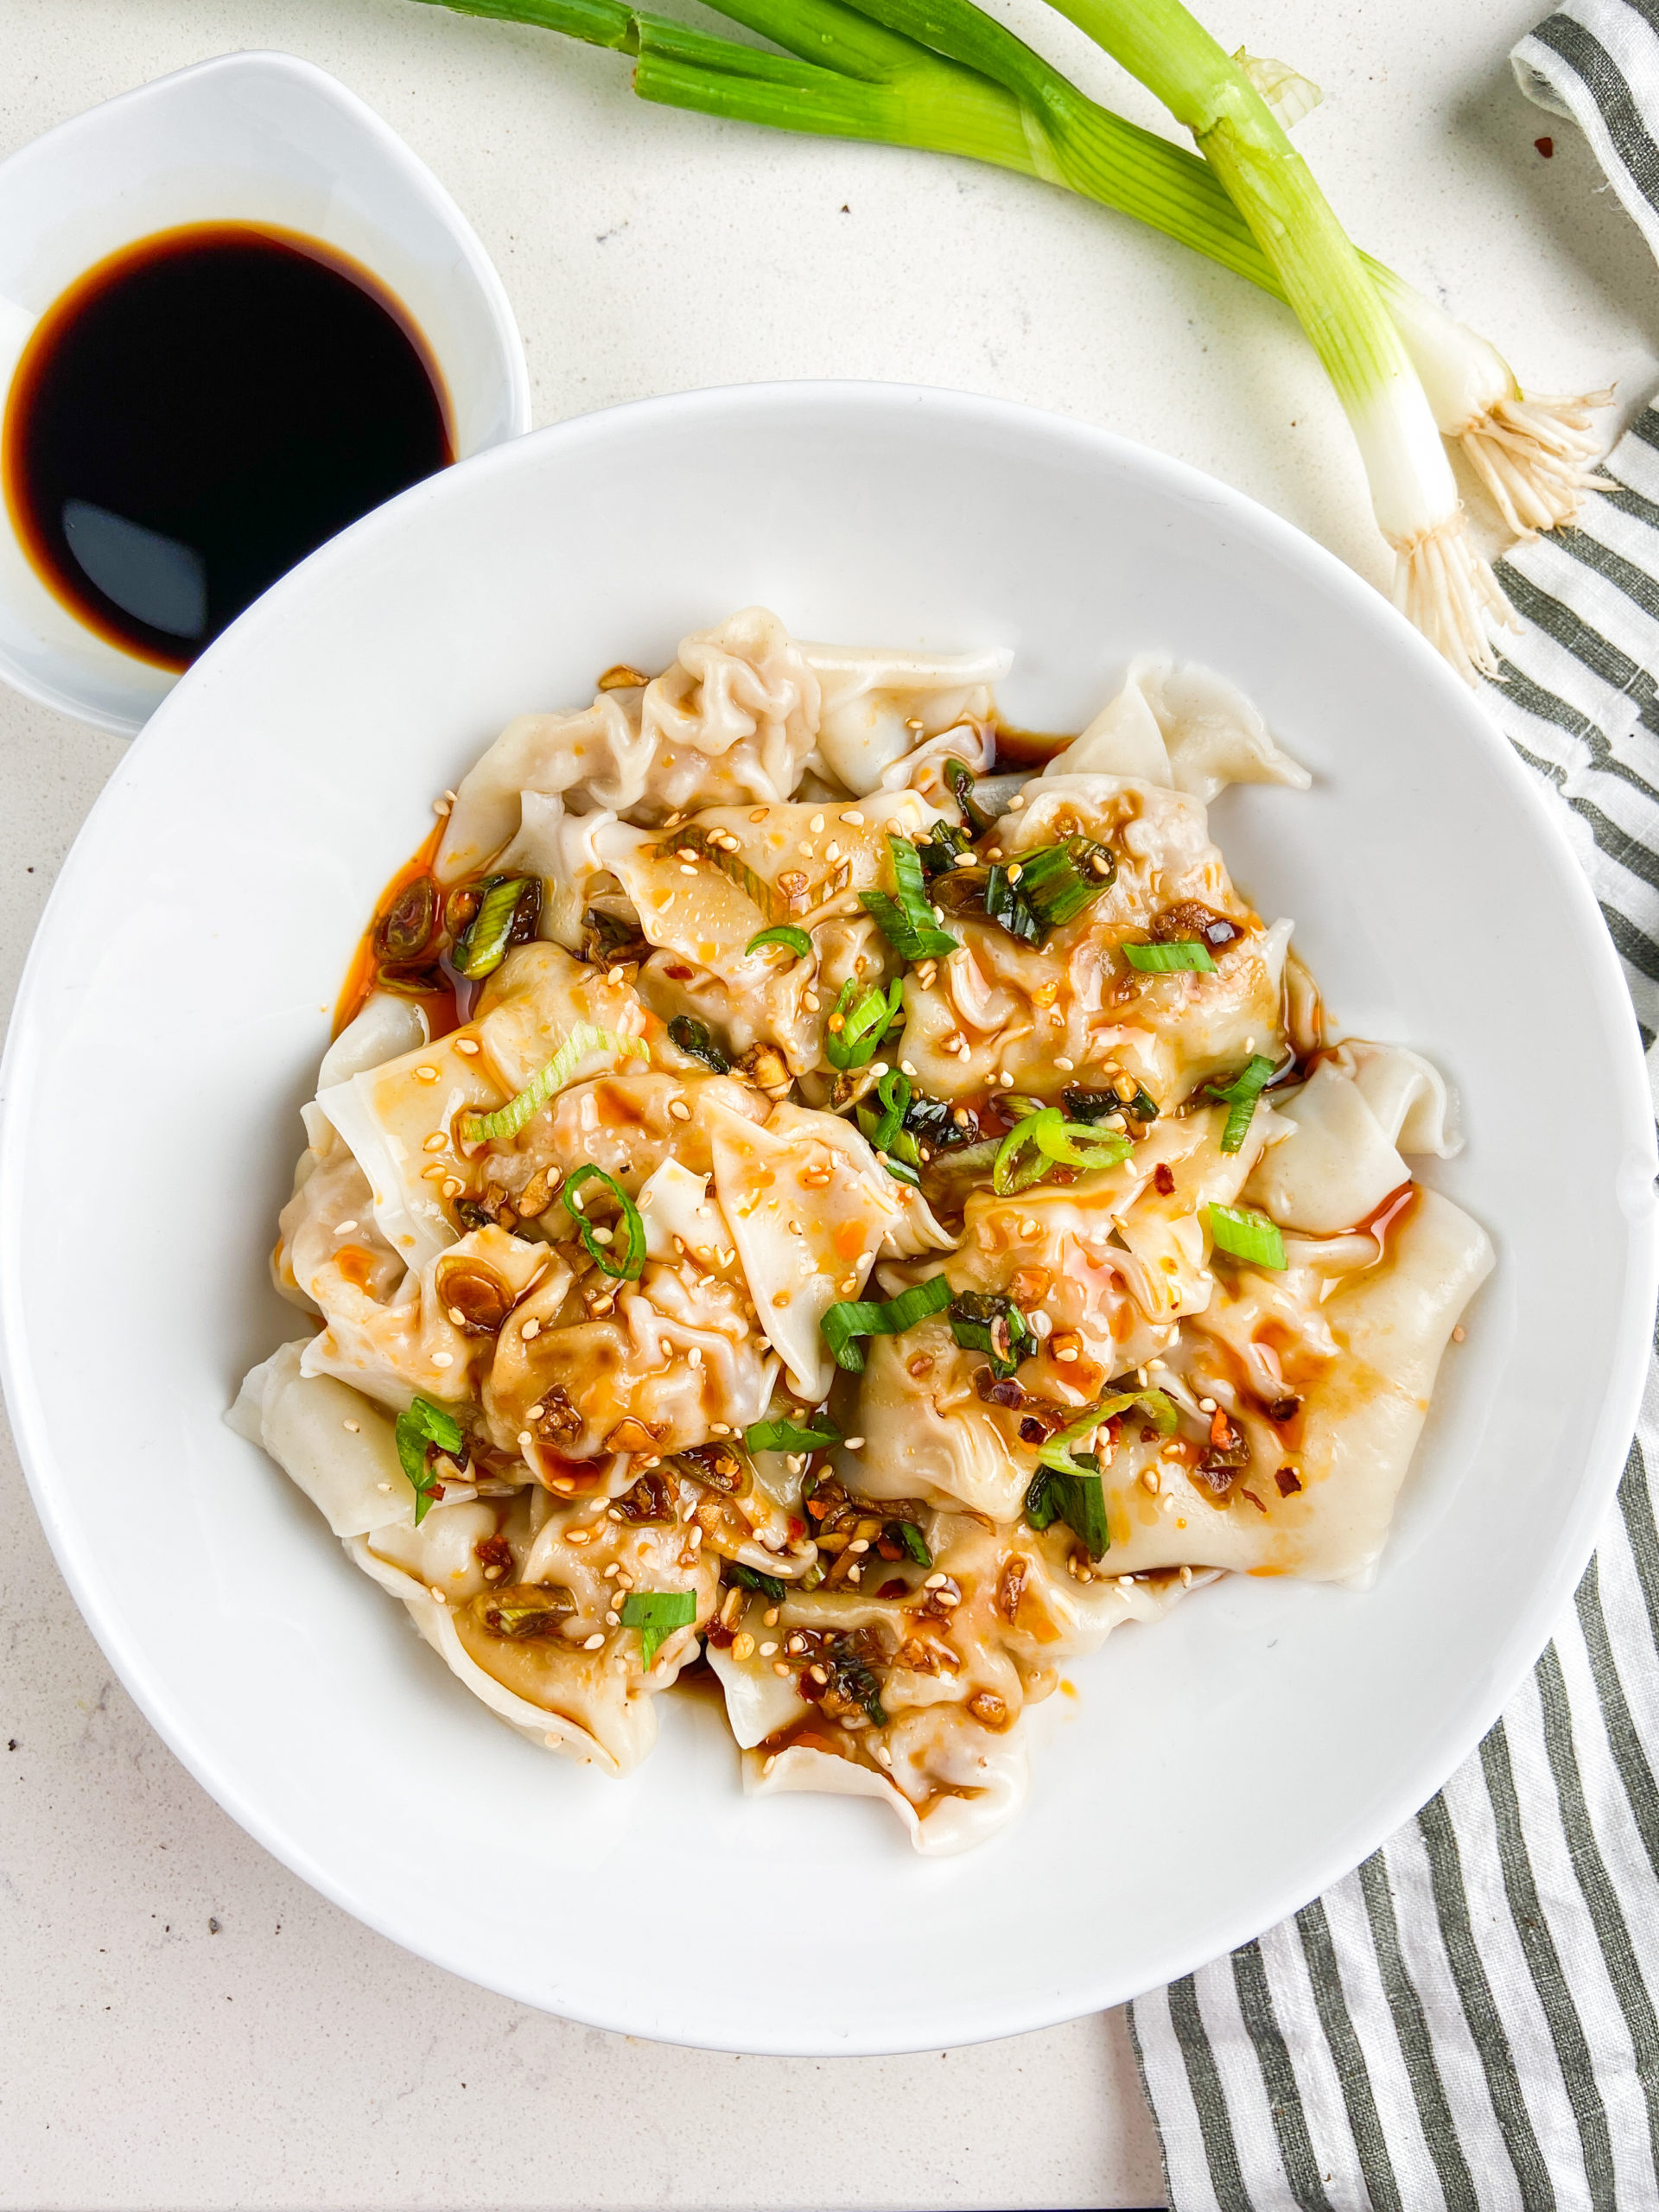 Overhead photo of shrimp and pork wontons in a white bowl.